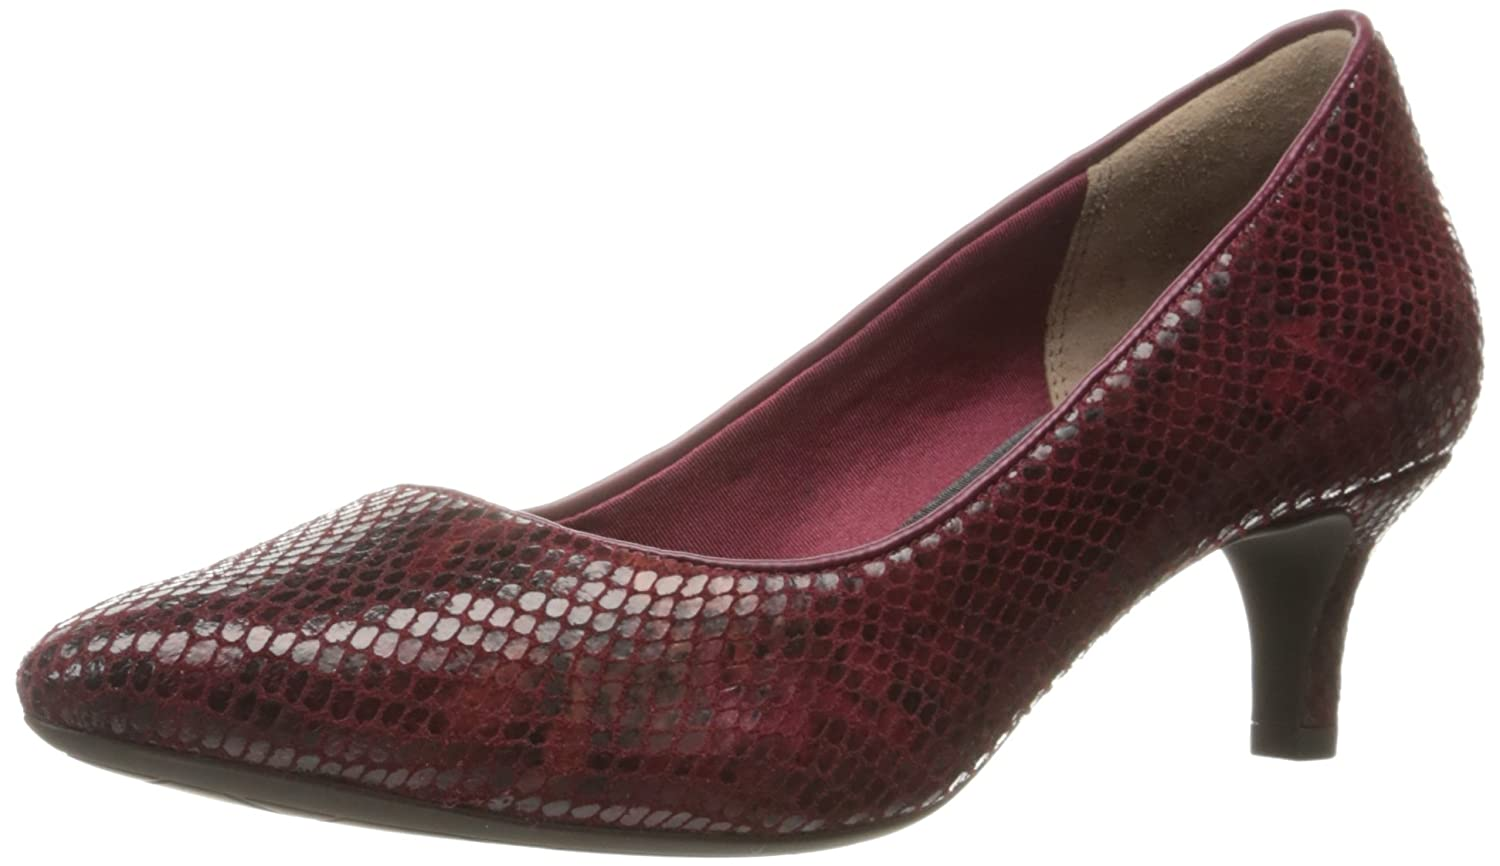 Rockport Women's Total Motion Kalila Dress Pump B01ABS0LJU 9 B(M) US|Cabernet Multi Snake